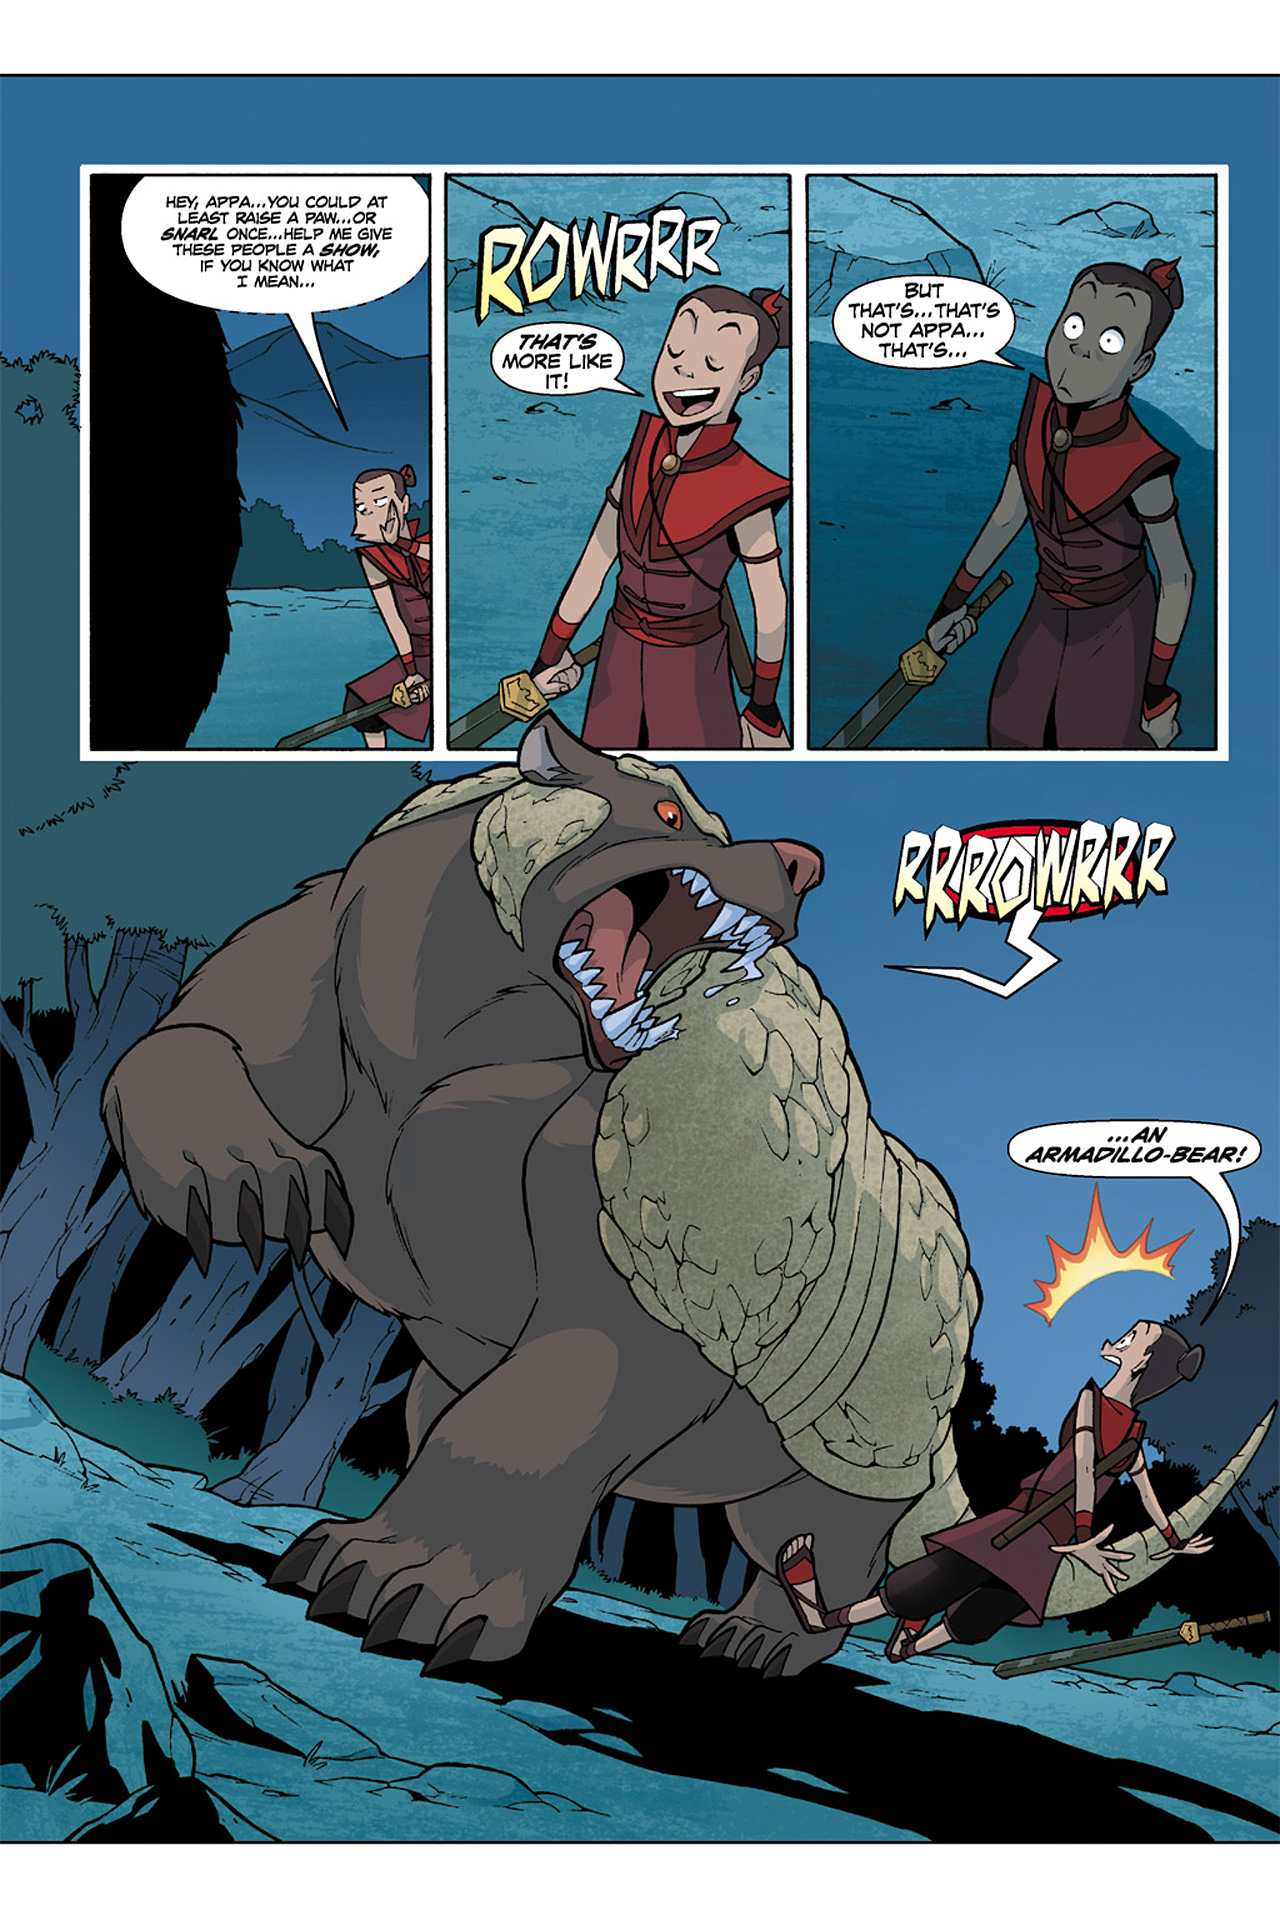 Nickelodeon Avatar: The Last Airbender - The Lost Adventures chap full pic 160